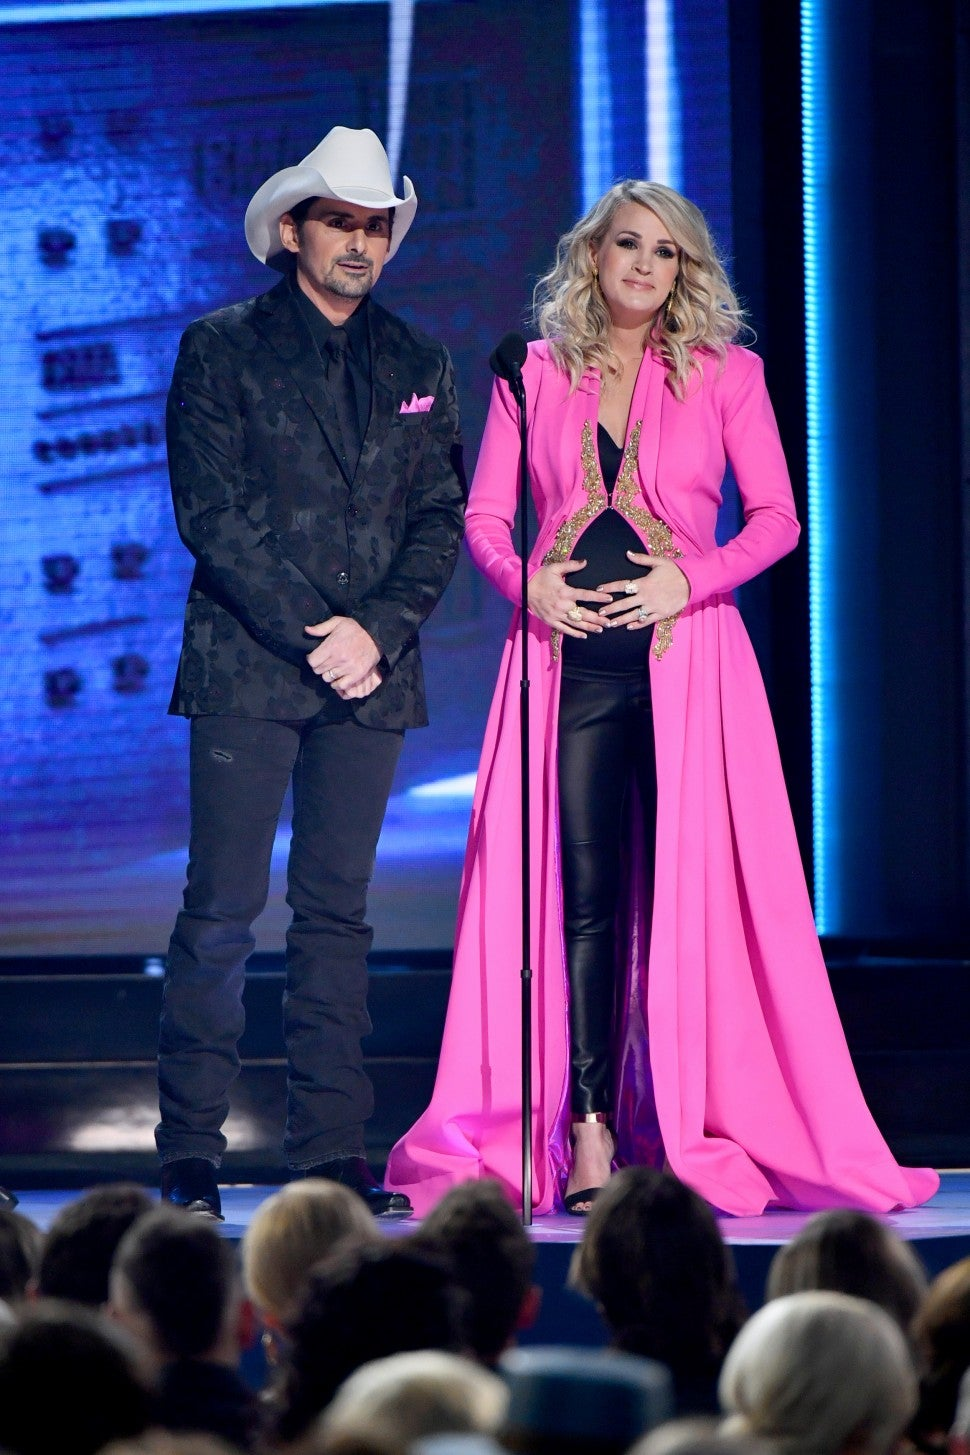 Carrie Underwood in pink robe CMA Awards show